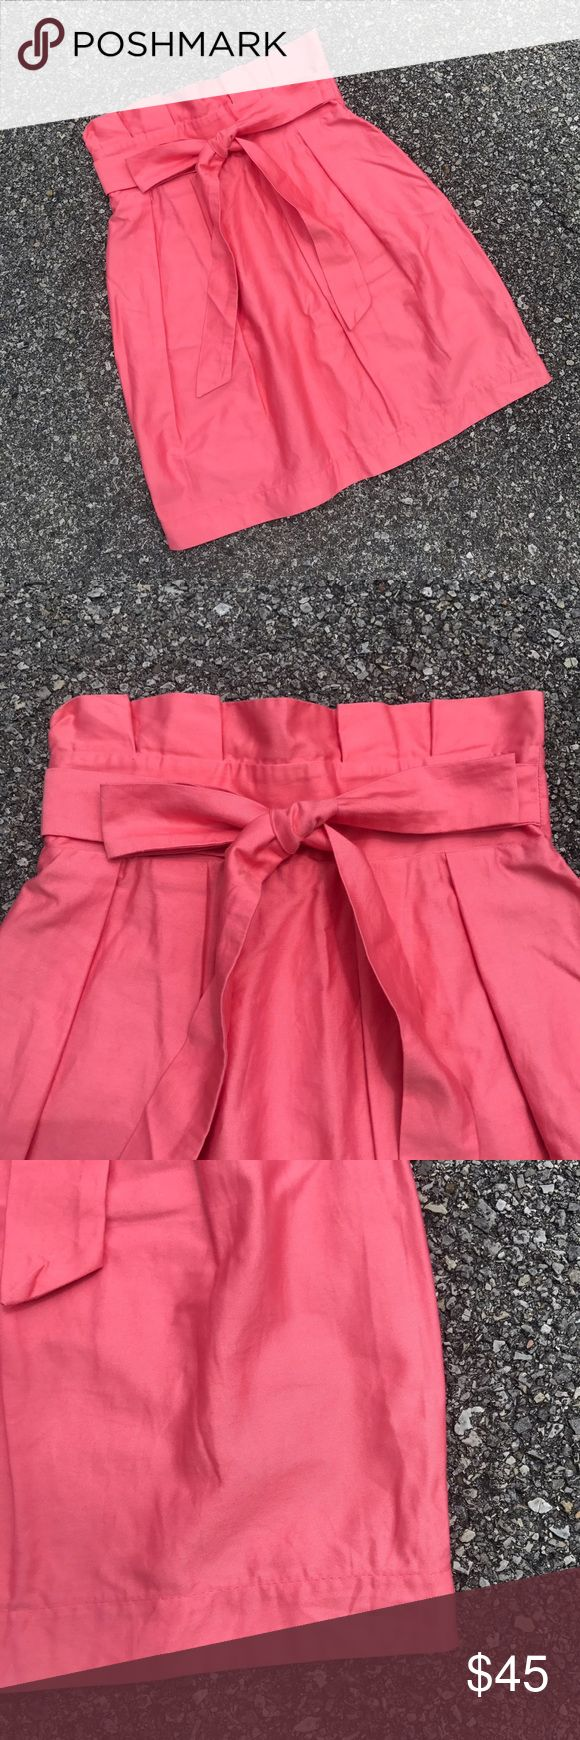 """Frill Clothing Carolina Bow High Waist Skirt Stop. Seek no further. I have found the most adorable skirt in the world. This guy is the most gorgeous Pink I've ever seen. Ties at the front with a darling bow and comes up in a slight flare with a small v cut at the back. Incredibly flattering. Perfect condition. Size 0. Waist measures 12"""" at the band laid flat and 19"""" long. Anthropologie Skirts Mini"""